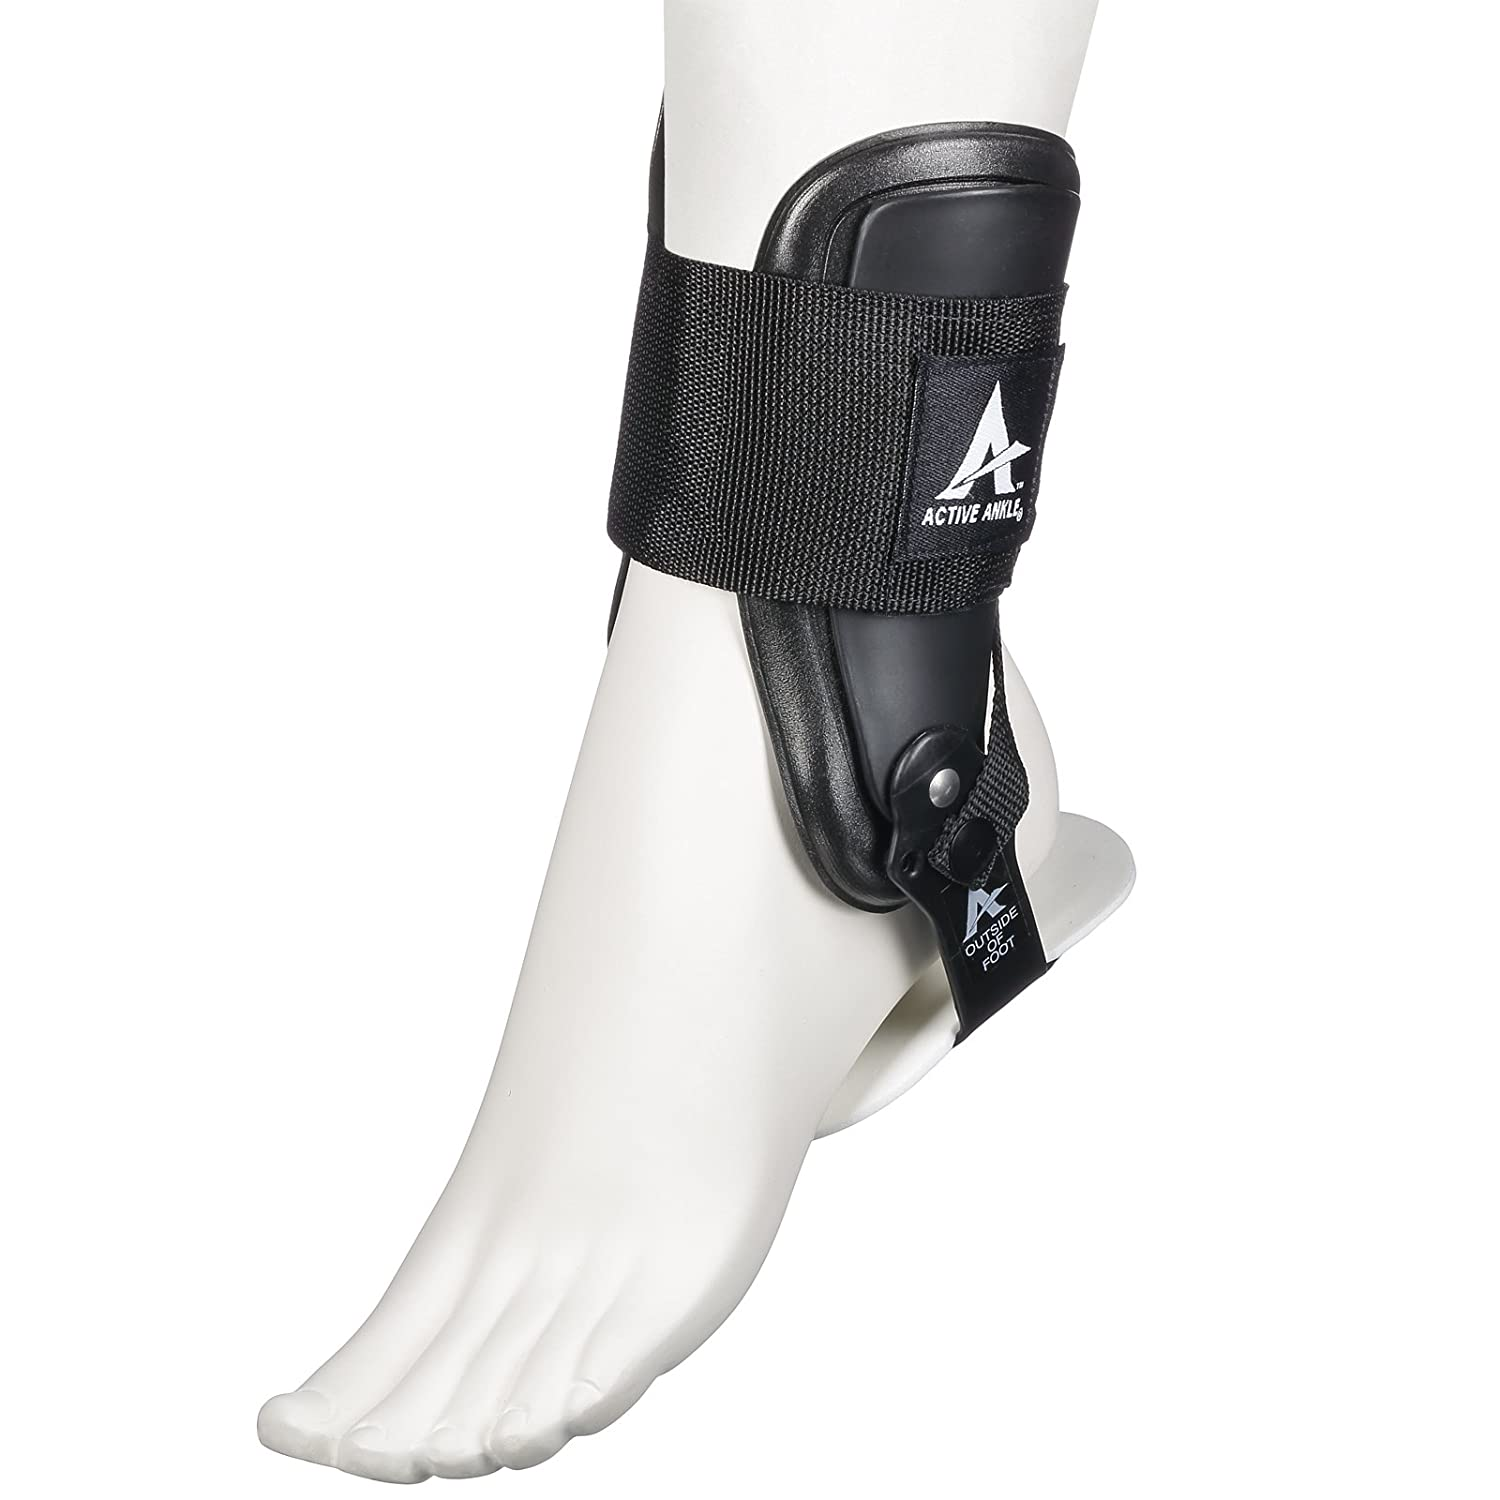 Active Ankle T2 Rigid Ankle Brace